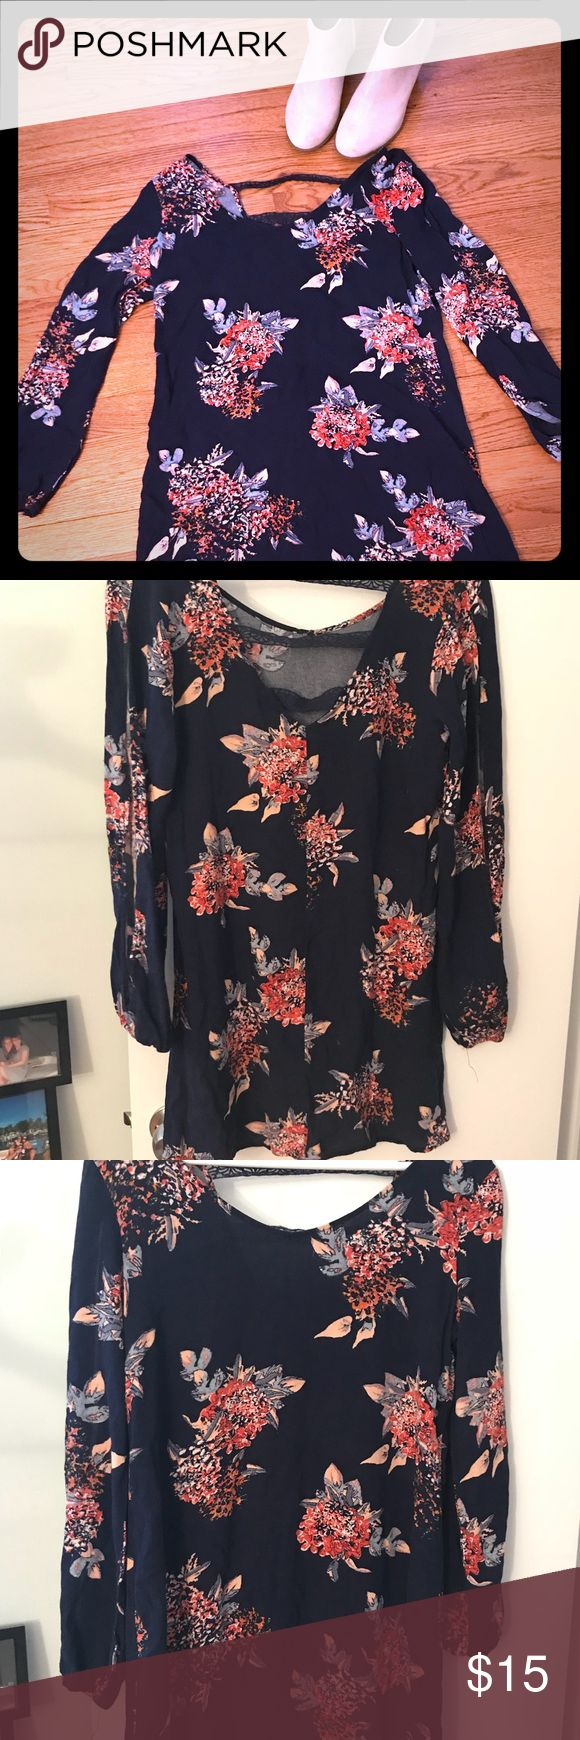 Navy blue mini dress Long sleeved, navy blue with orange and peach floral pattern, somewhat open back Xhilaration Dresses